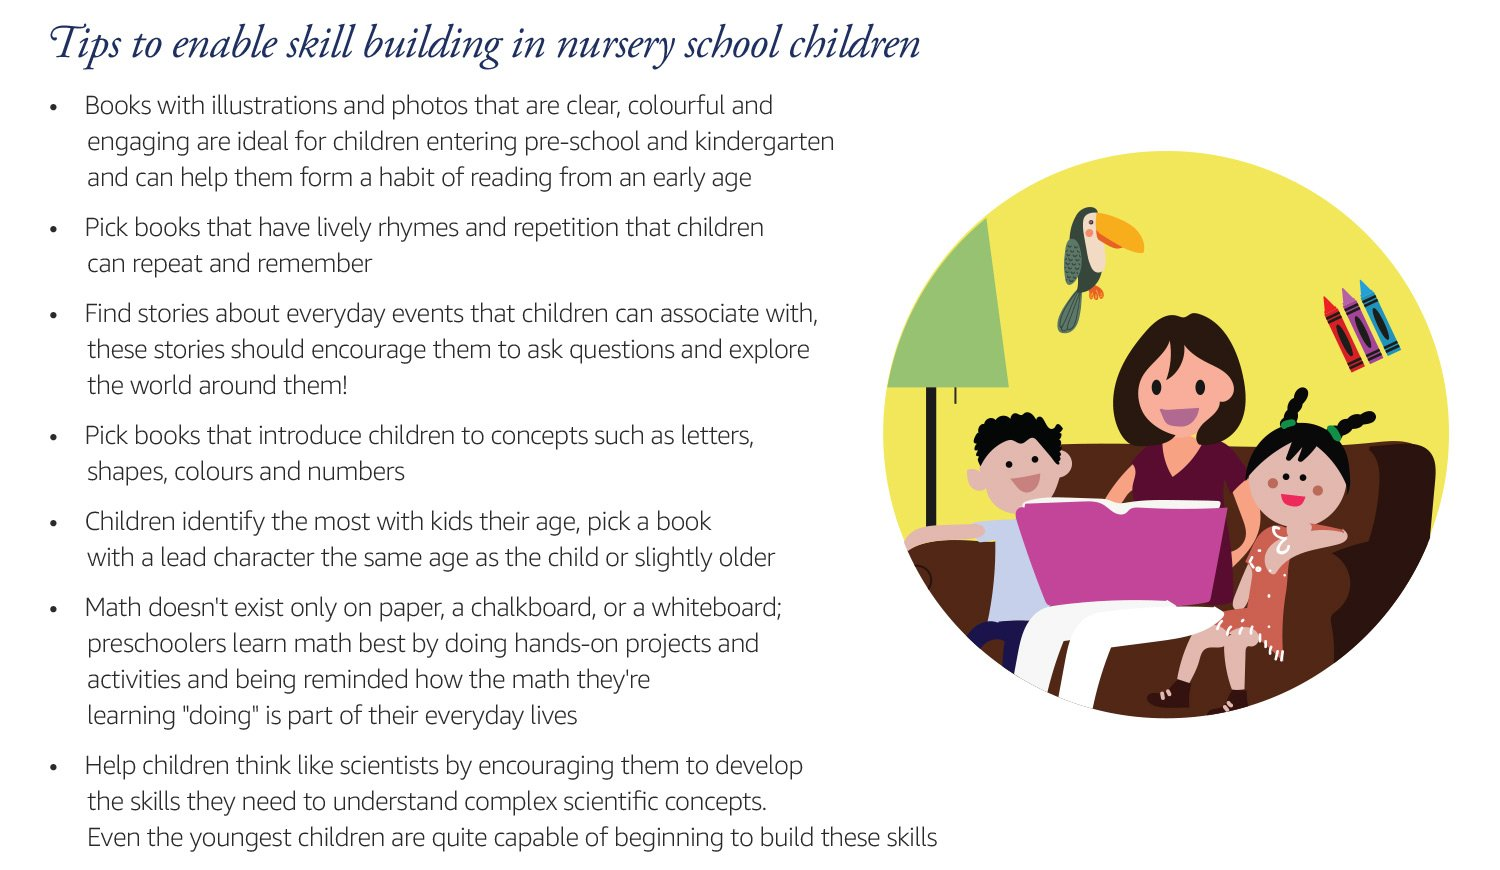 Tips to enable skill building in nursery school children